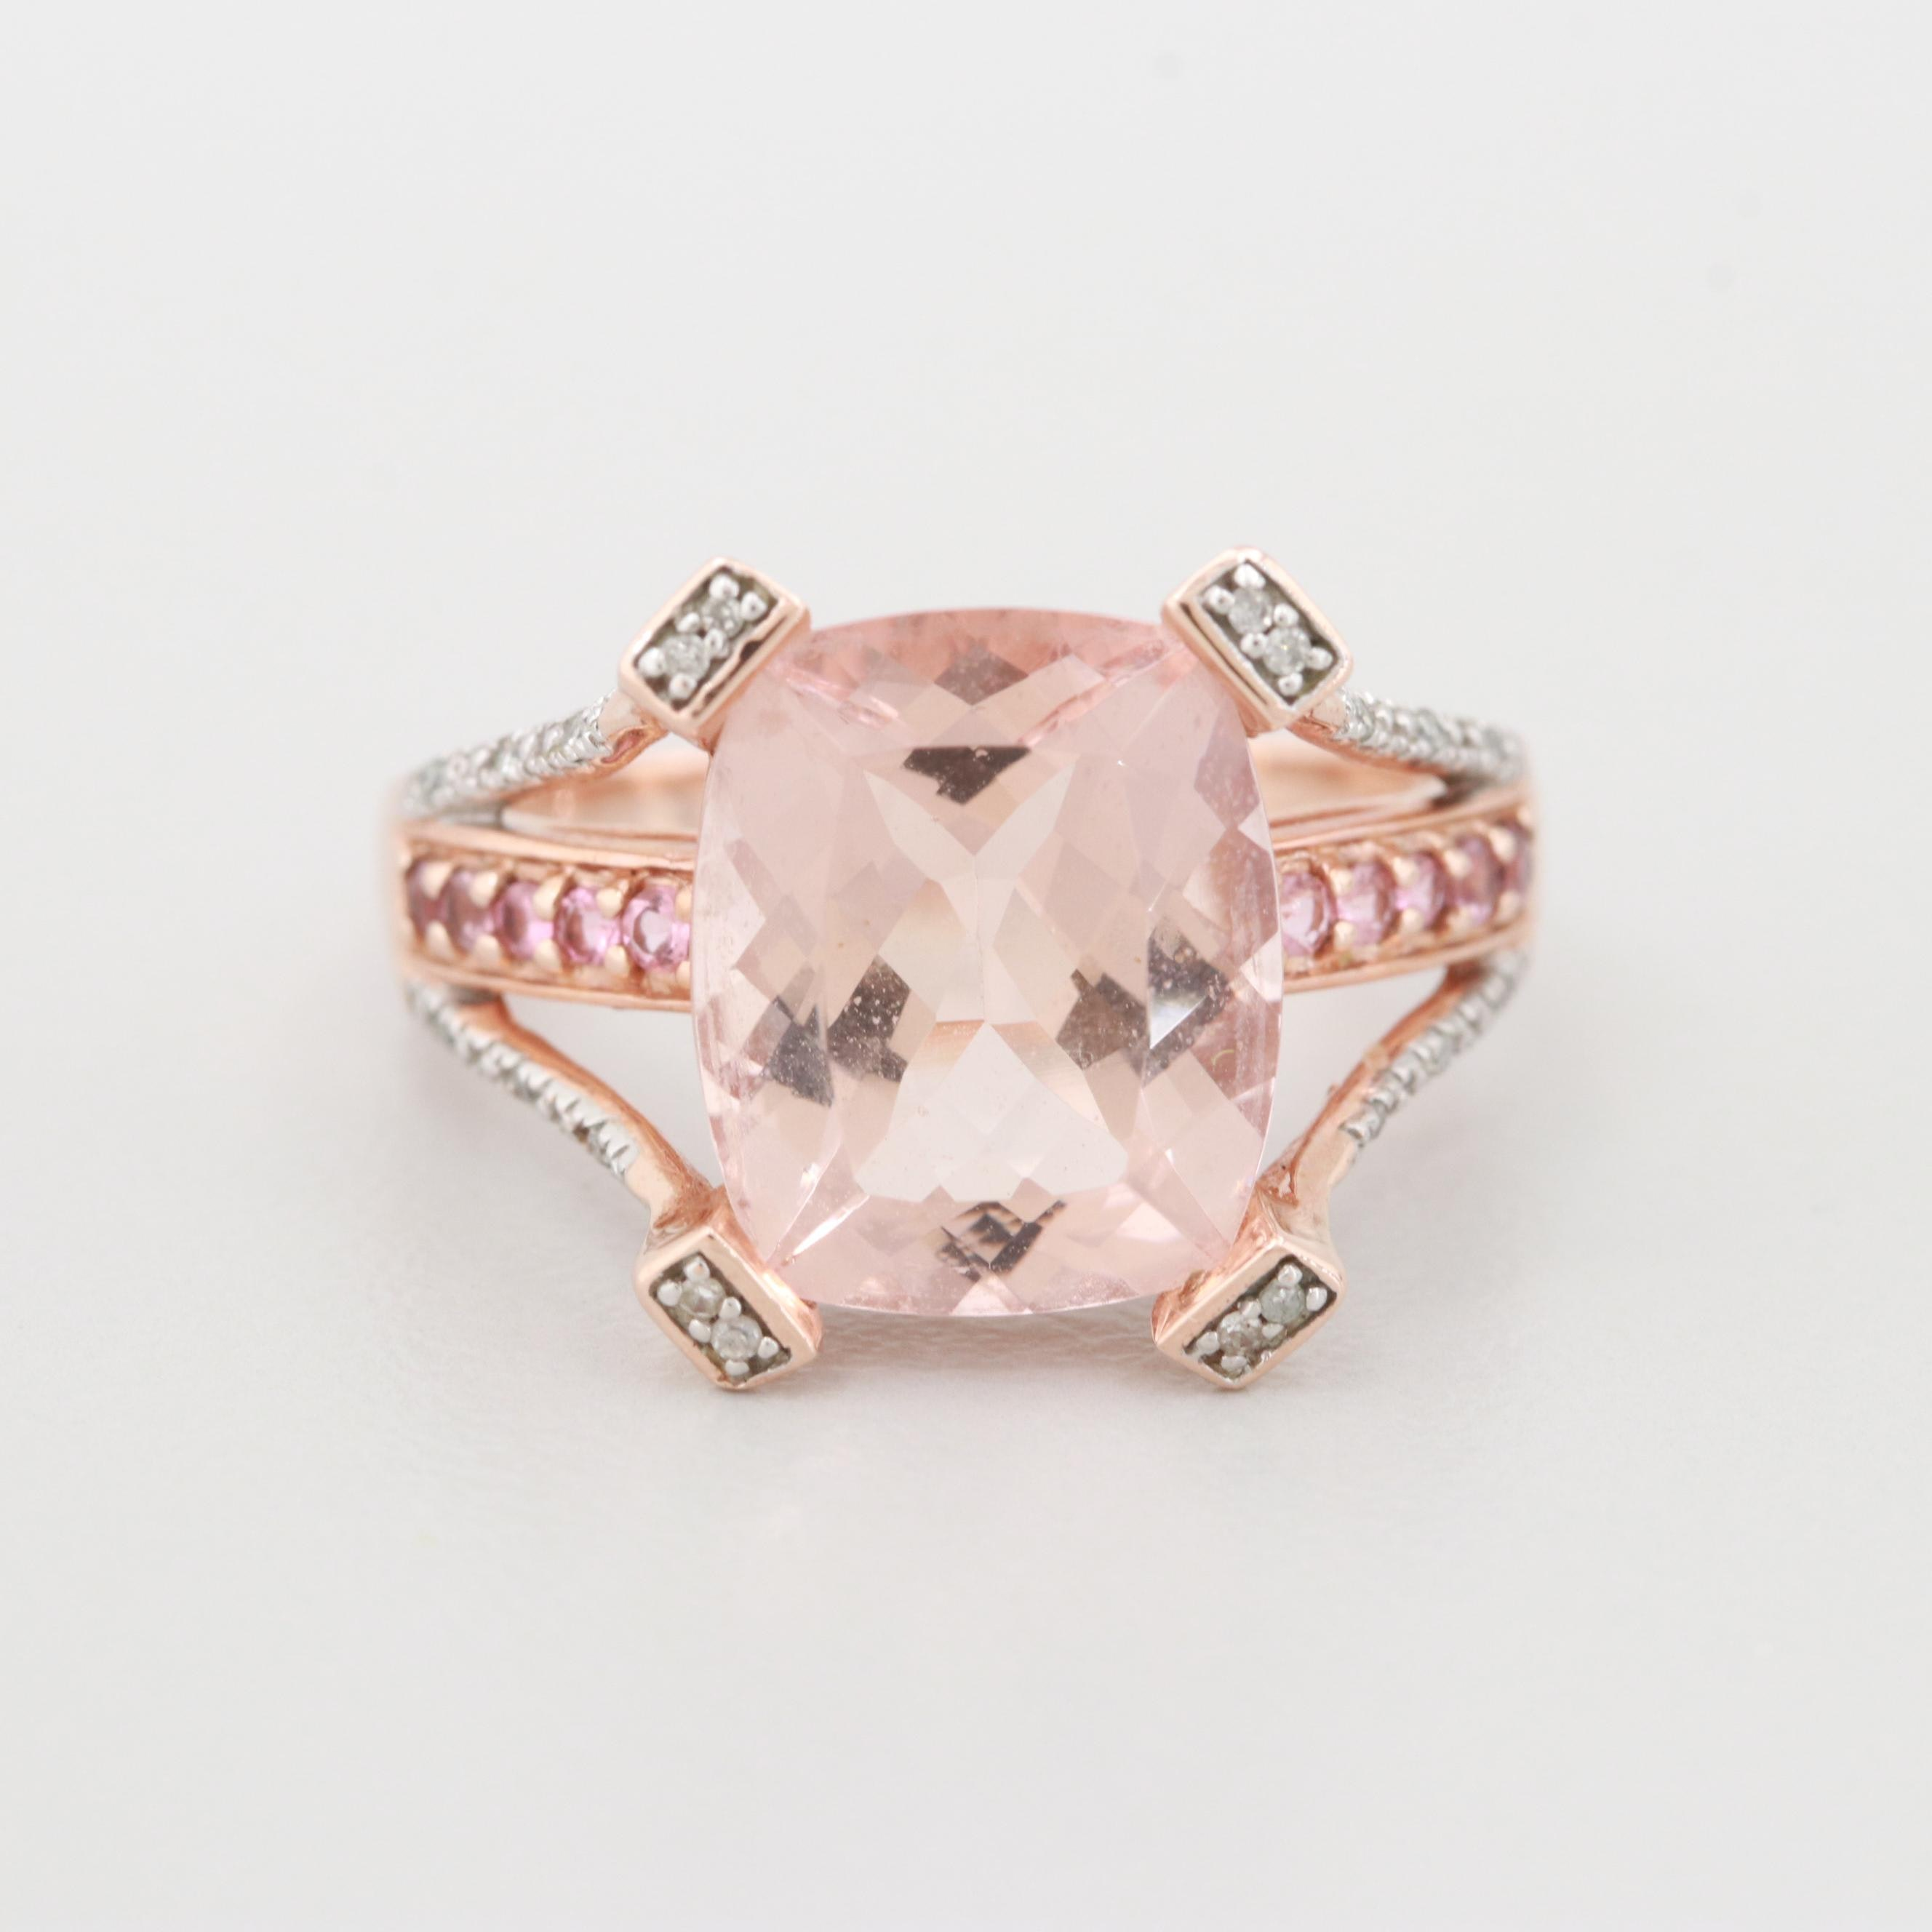 10K Rose Gold Morganite, Diamond and Pink Tourmaline Ring